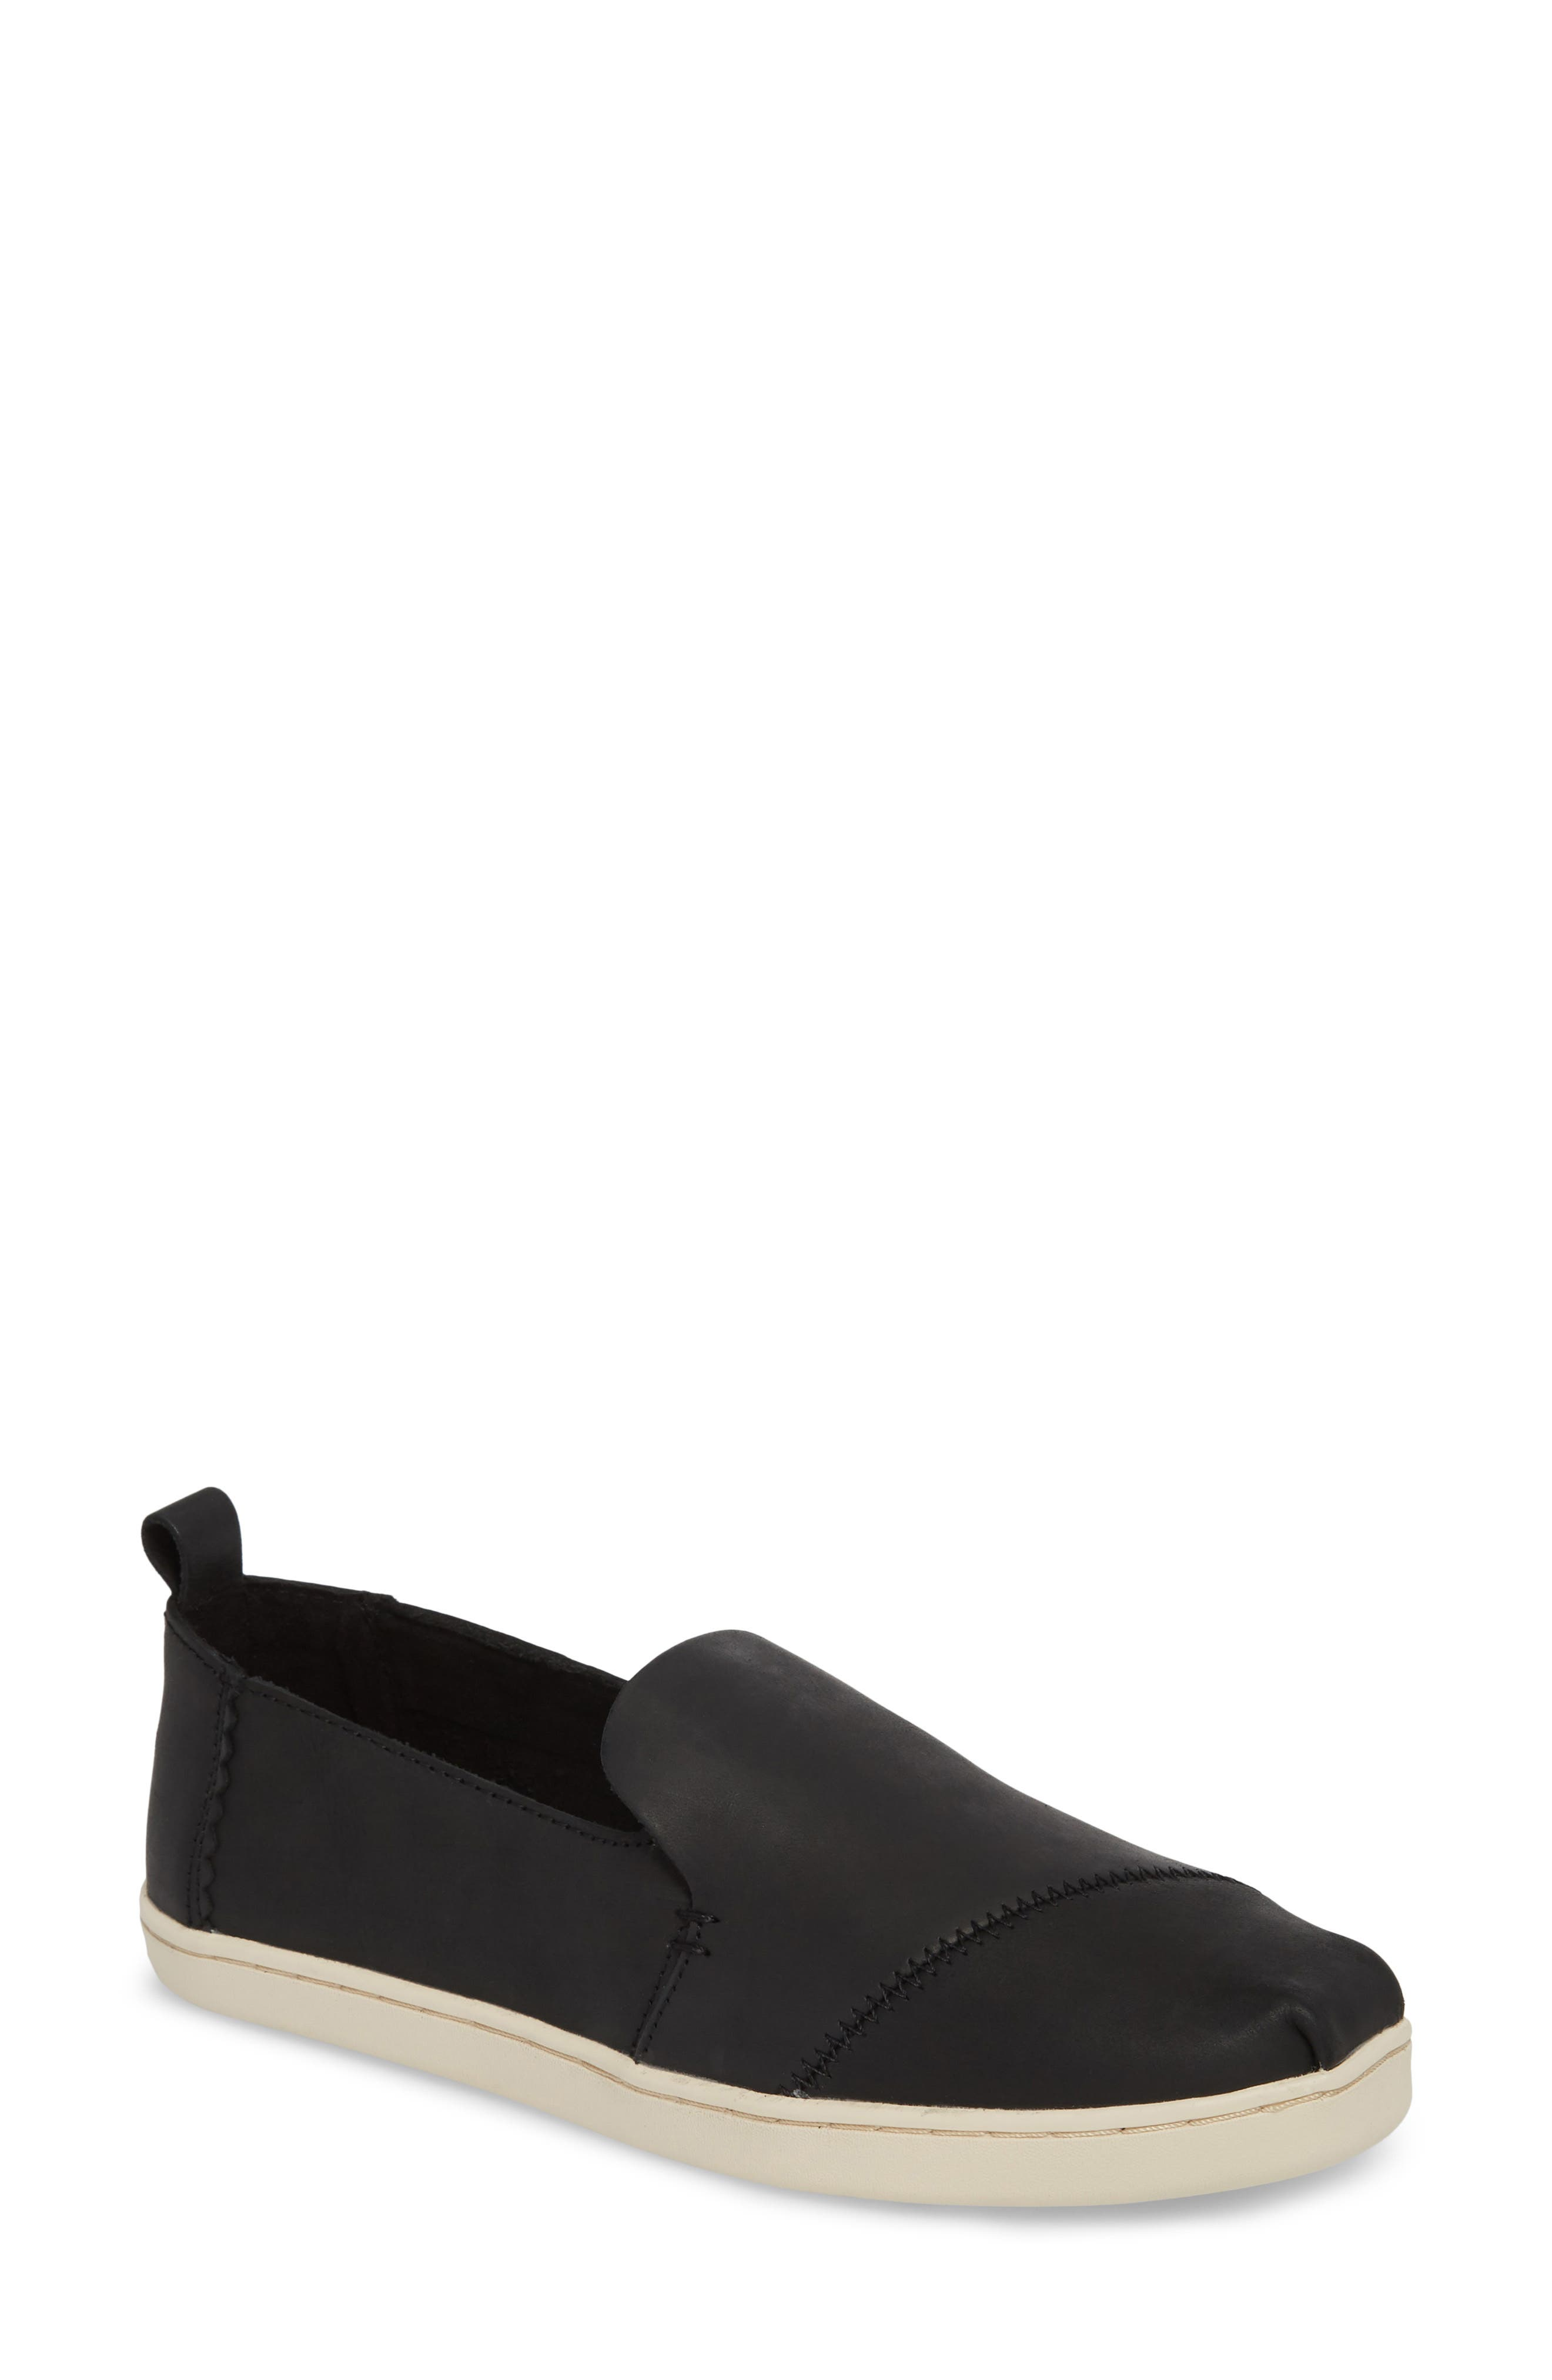 Deconstructed Alpargata Slip-On,                         Main,                         color, BLACK LEATHER